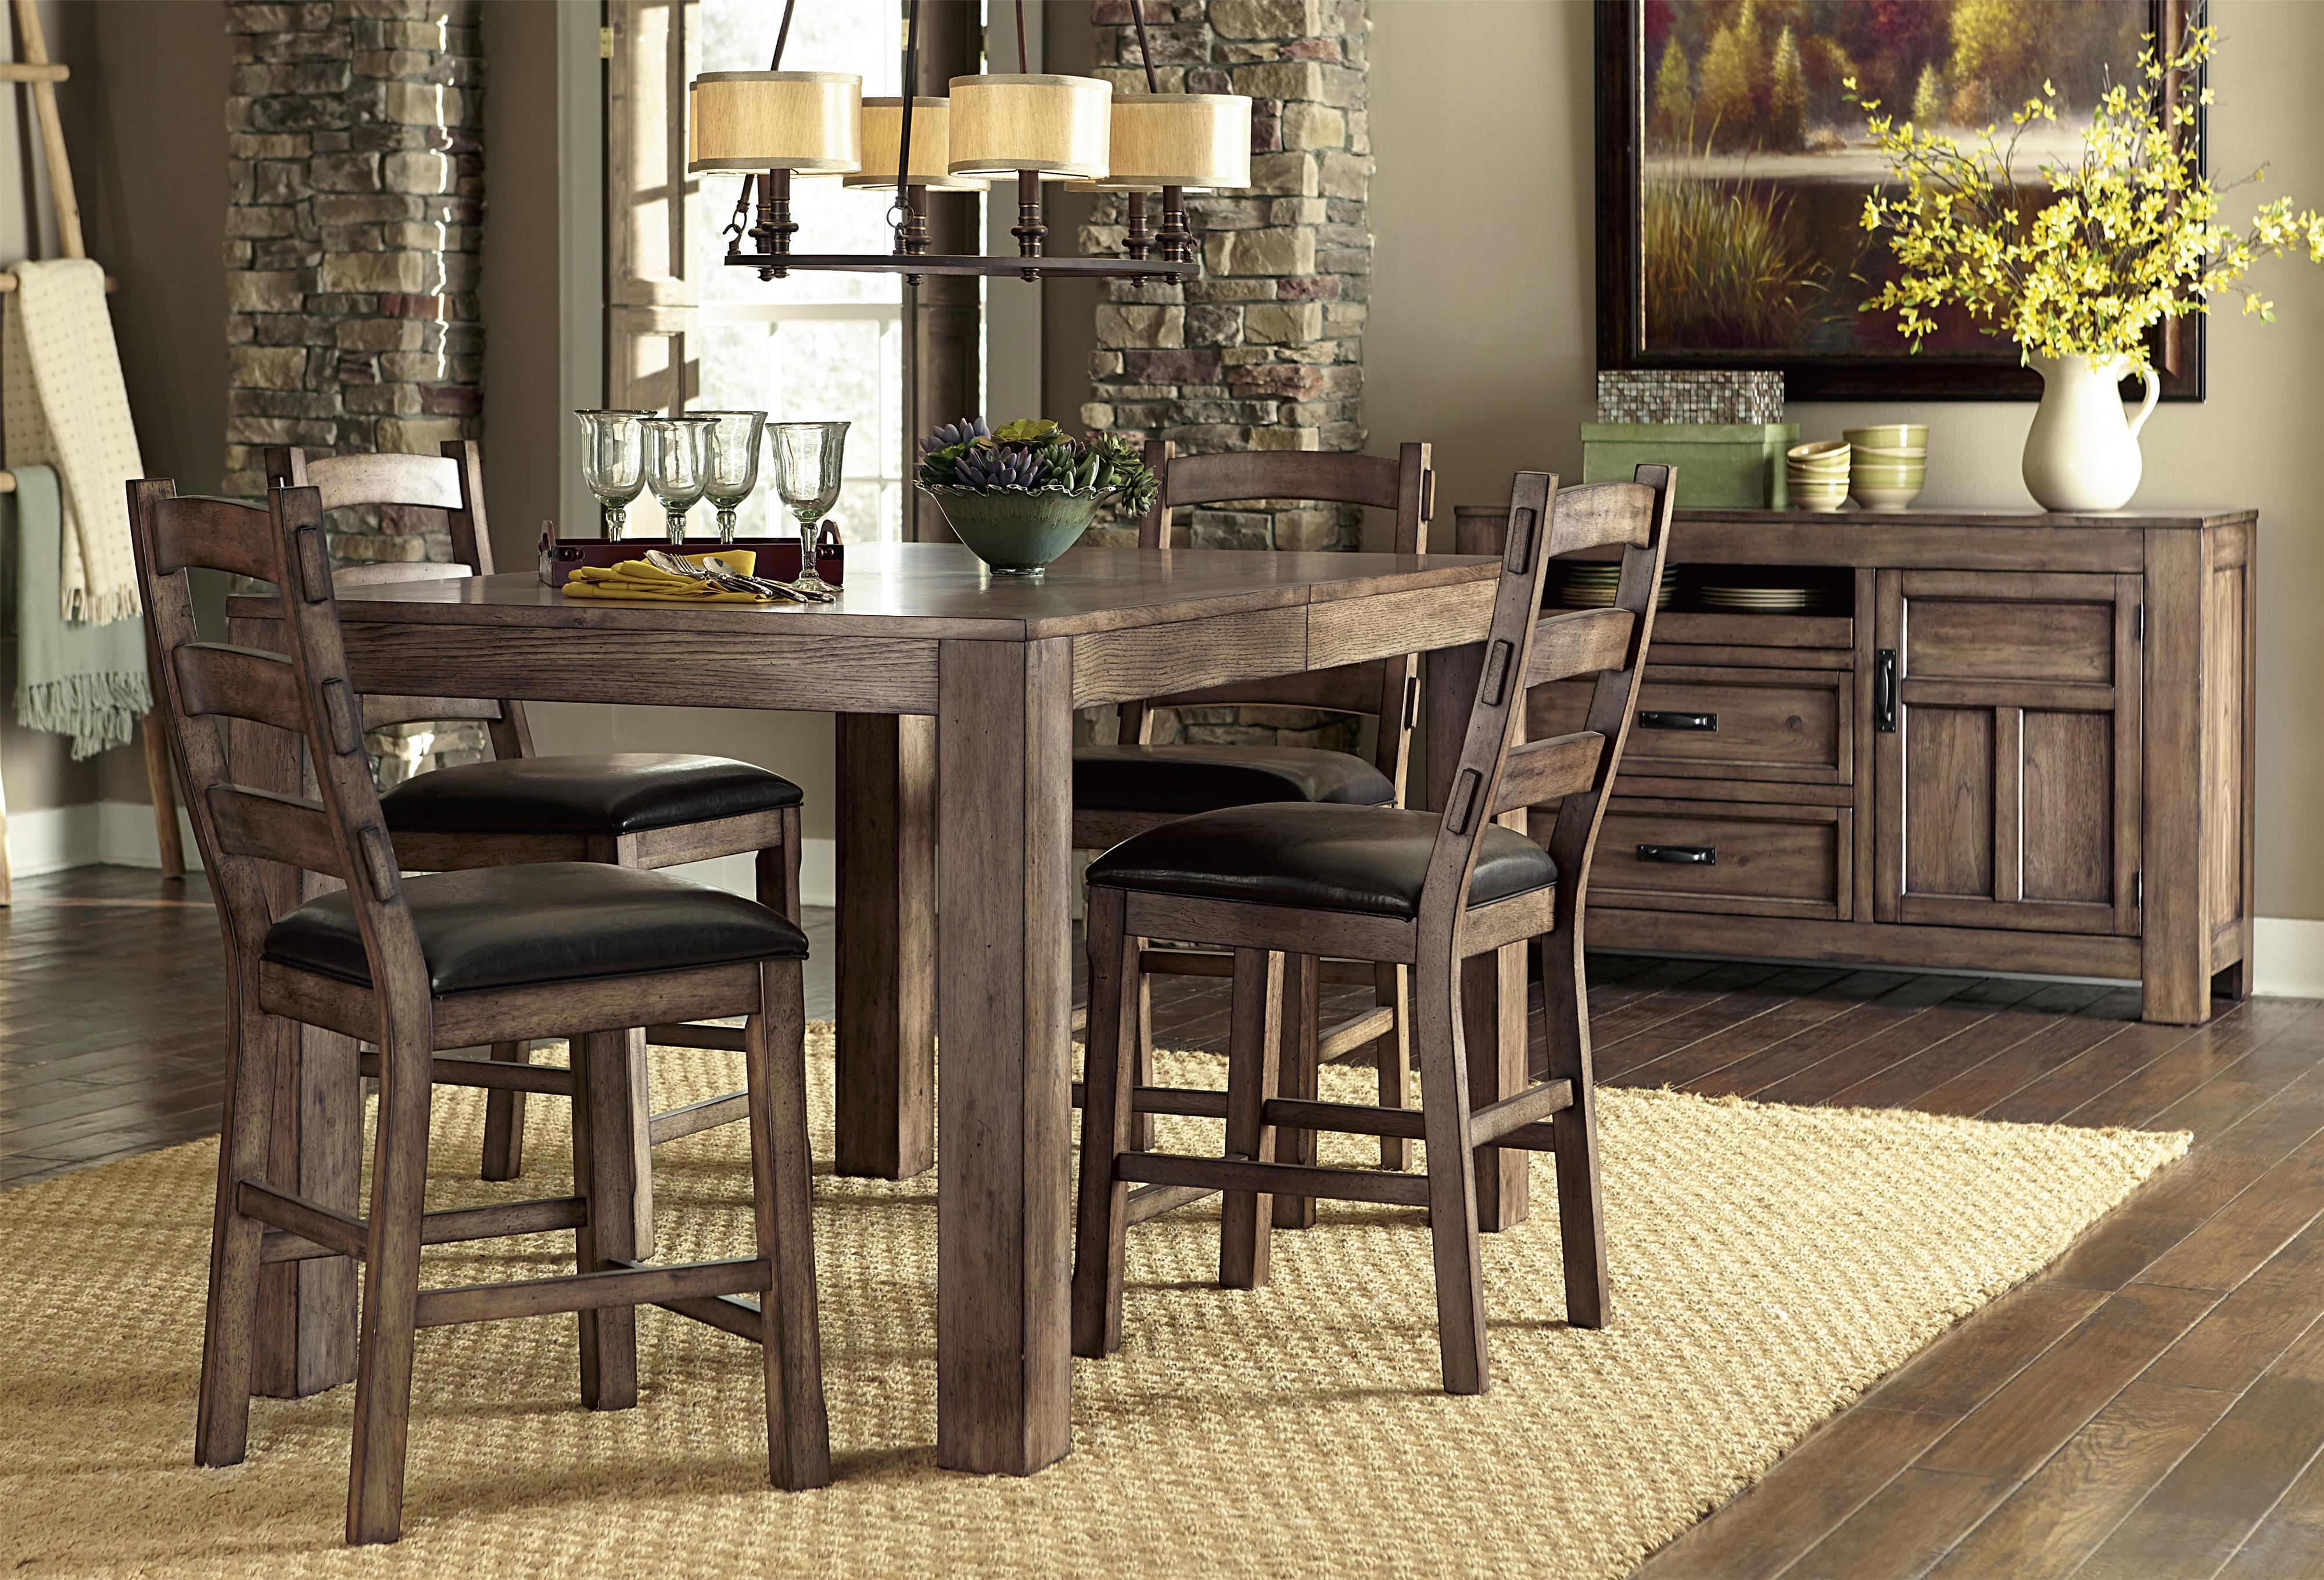 Progressive furniture boulder creek casual dining room for Casual dining room